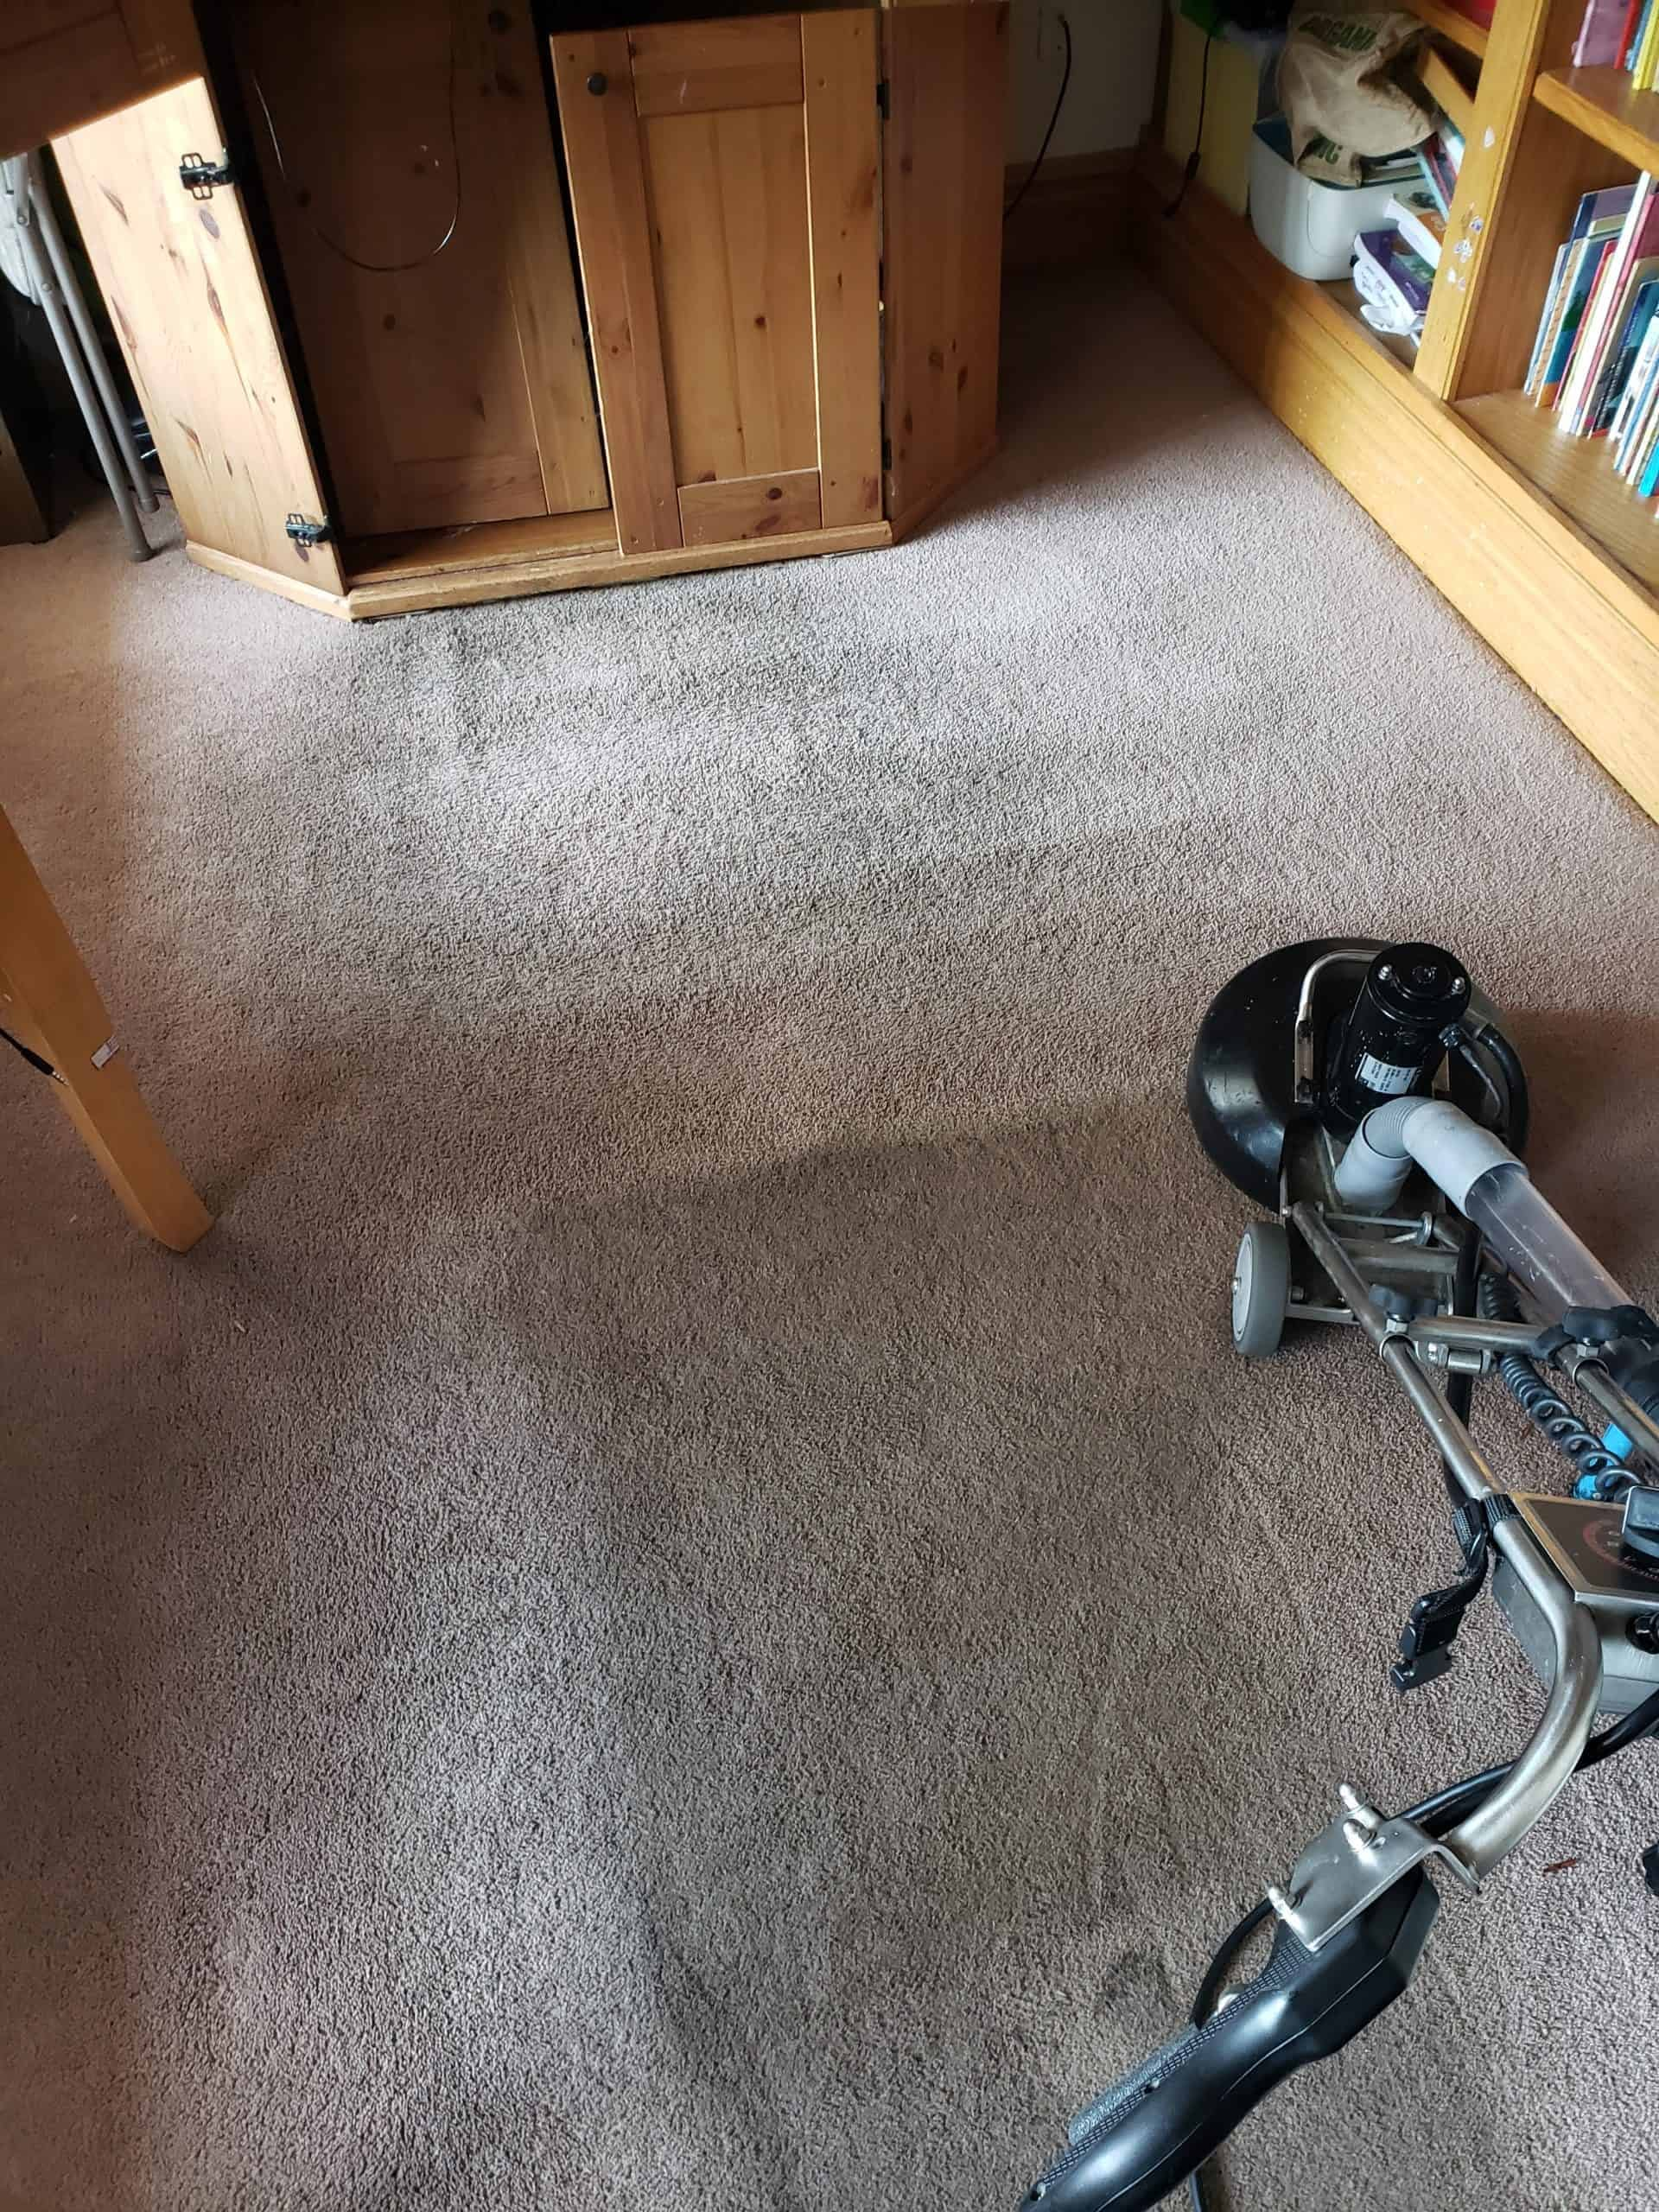 Cleaning carpets in Bucks County, PA